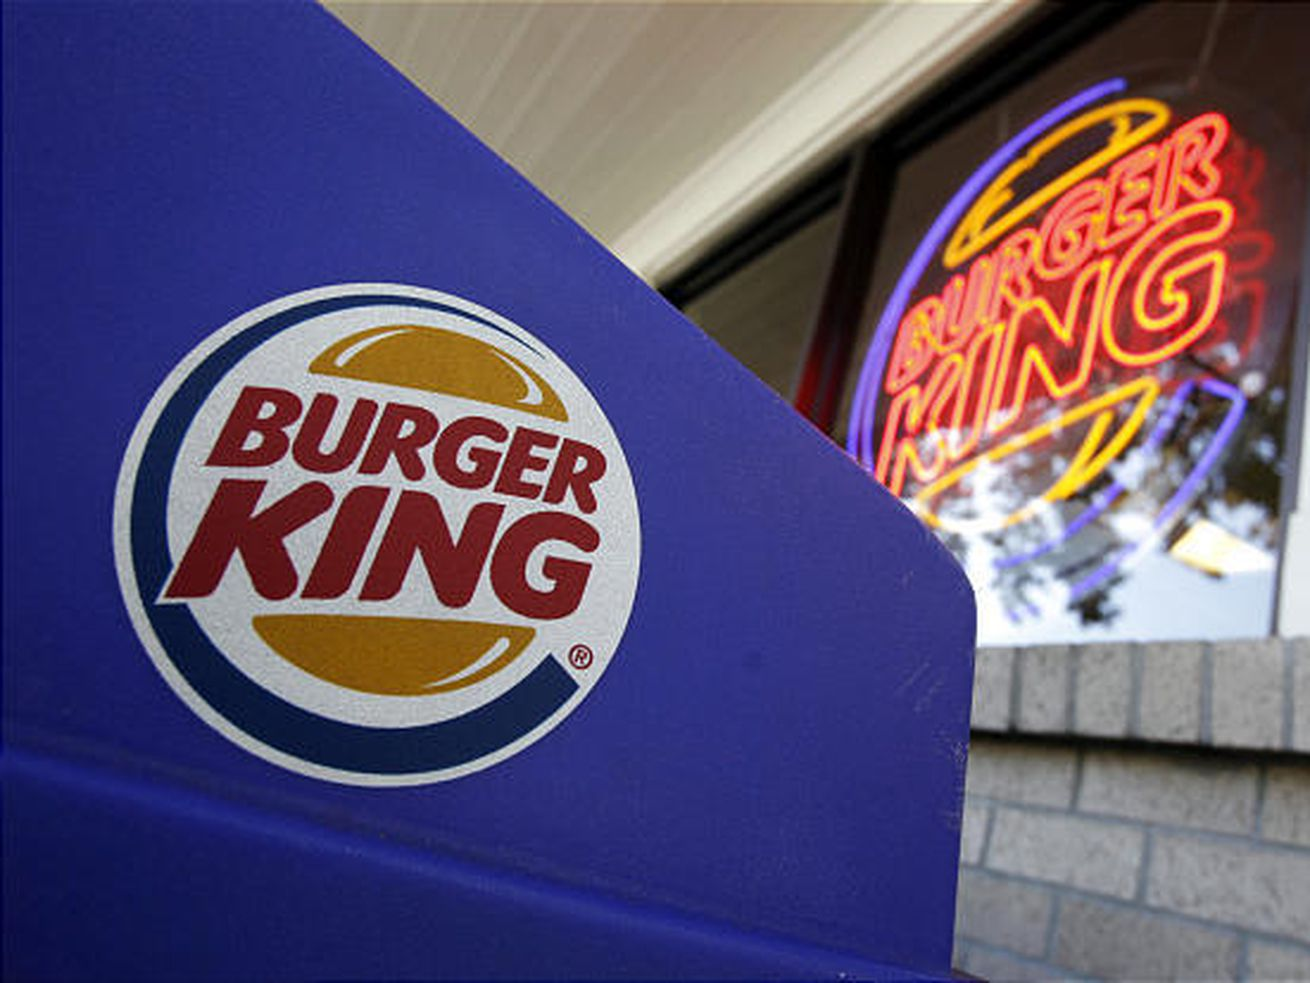 Burger King's new Whopper innovation: cows that fart and burp less